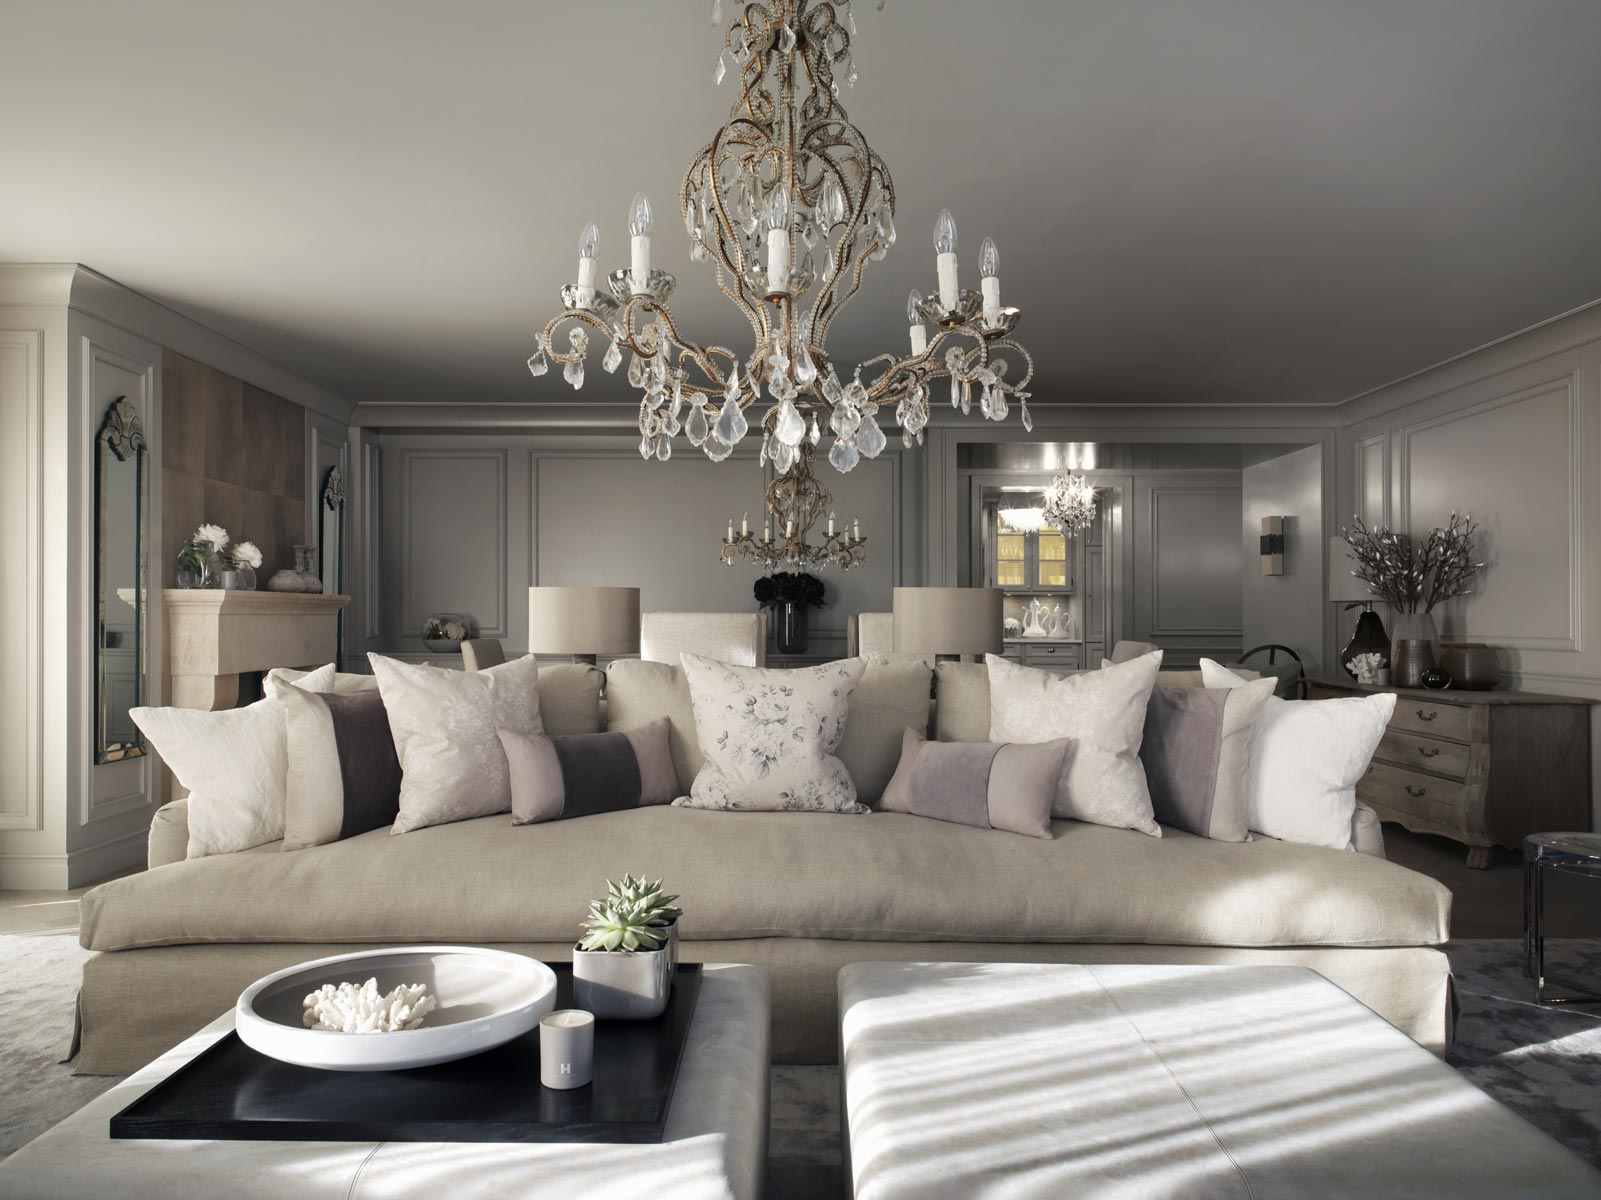 Top 10 kelly hoppen design ideas for Interior design layout inspiration